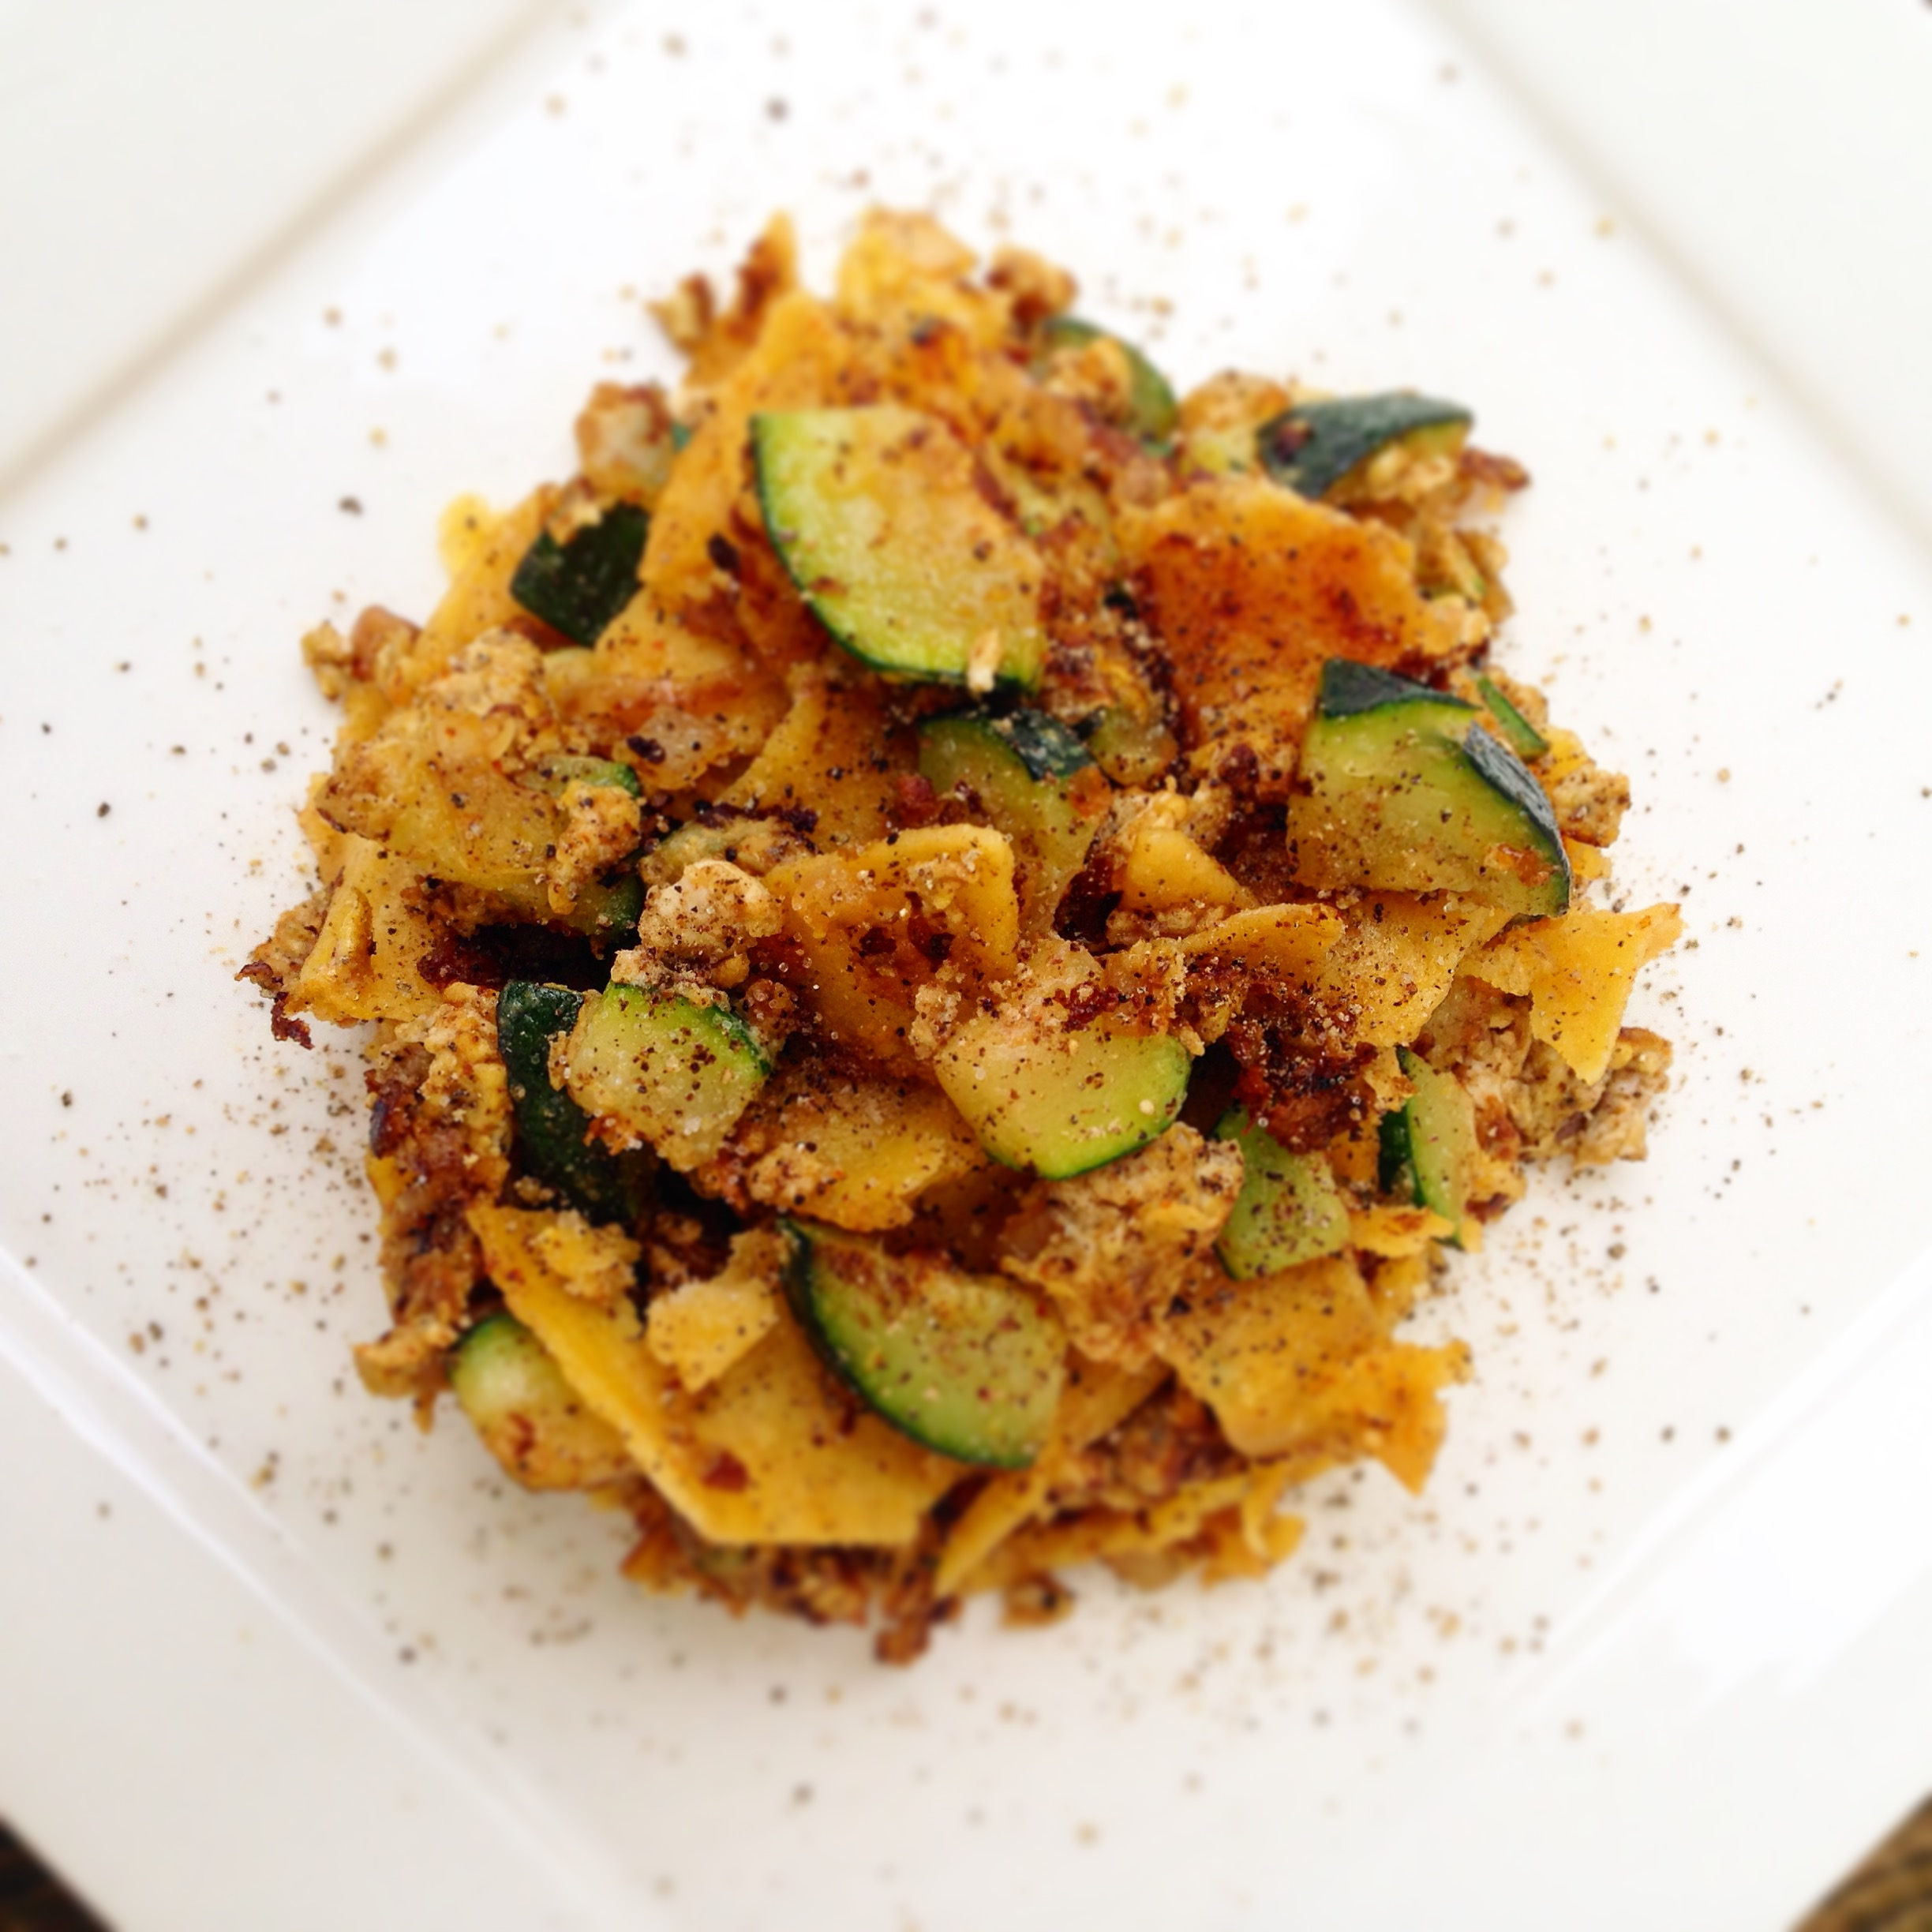 10 Minute Meal: Zucchini and Egg Chilaquiles